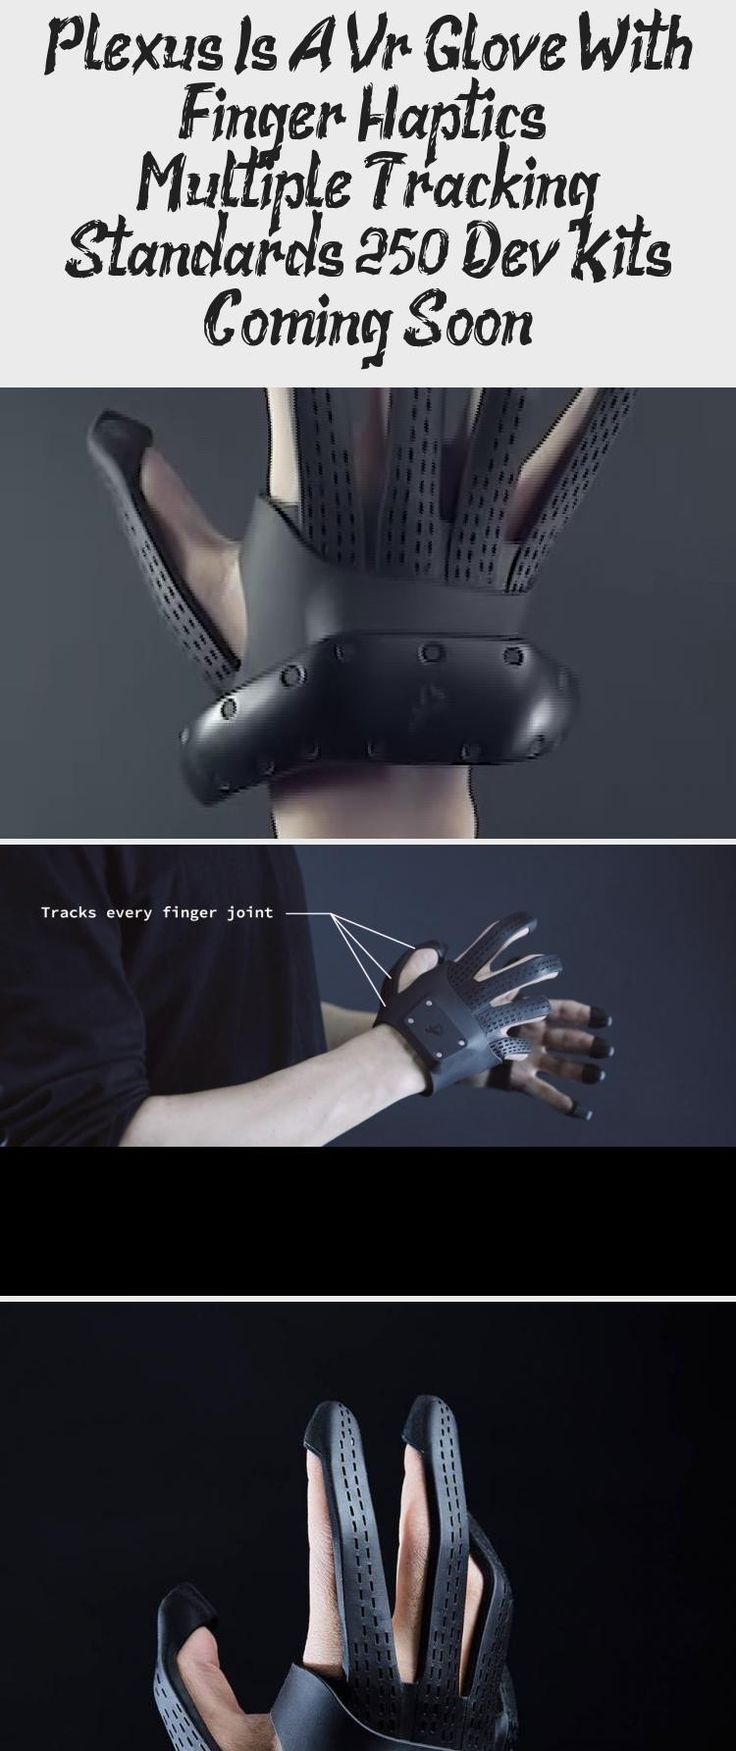 Plexus Is A Vr Glove With Finger Haptics & Multiple Tracking Standards, $250 Dev Kits Coming Soon - Technology in 2020 | Tracking standards ...